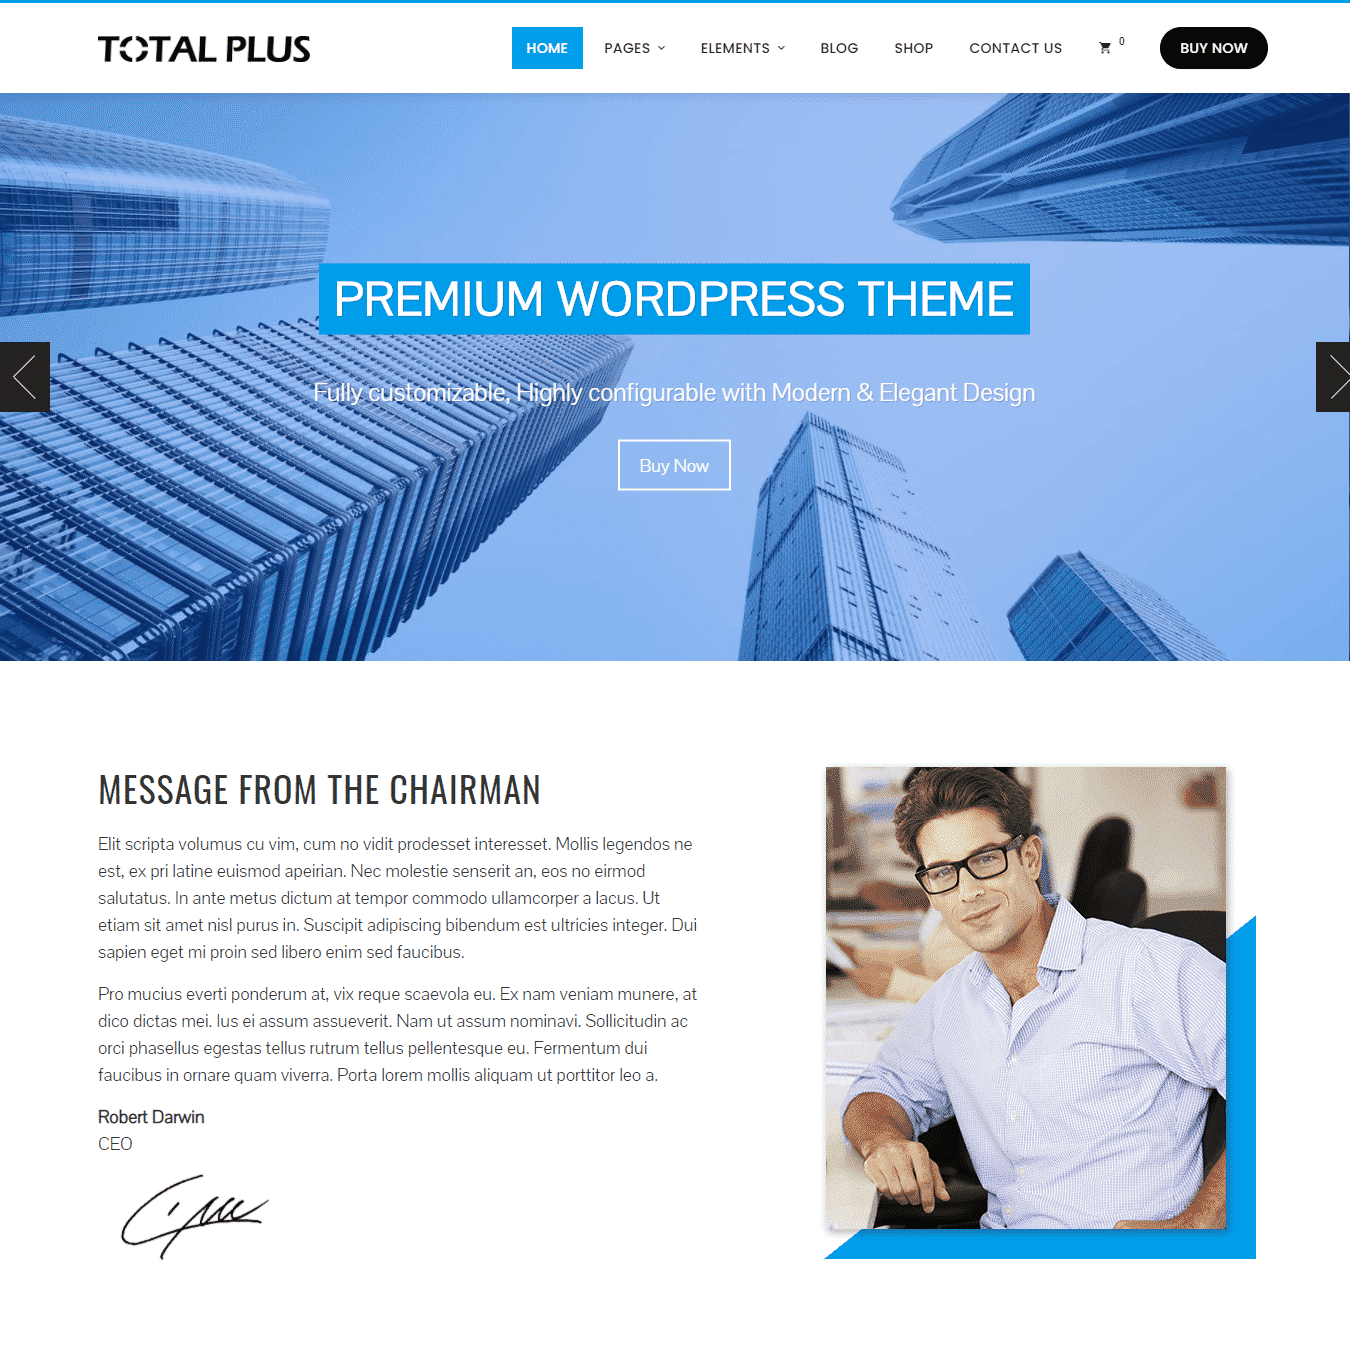 total plus WordPress theme